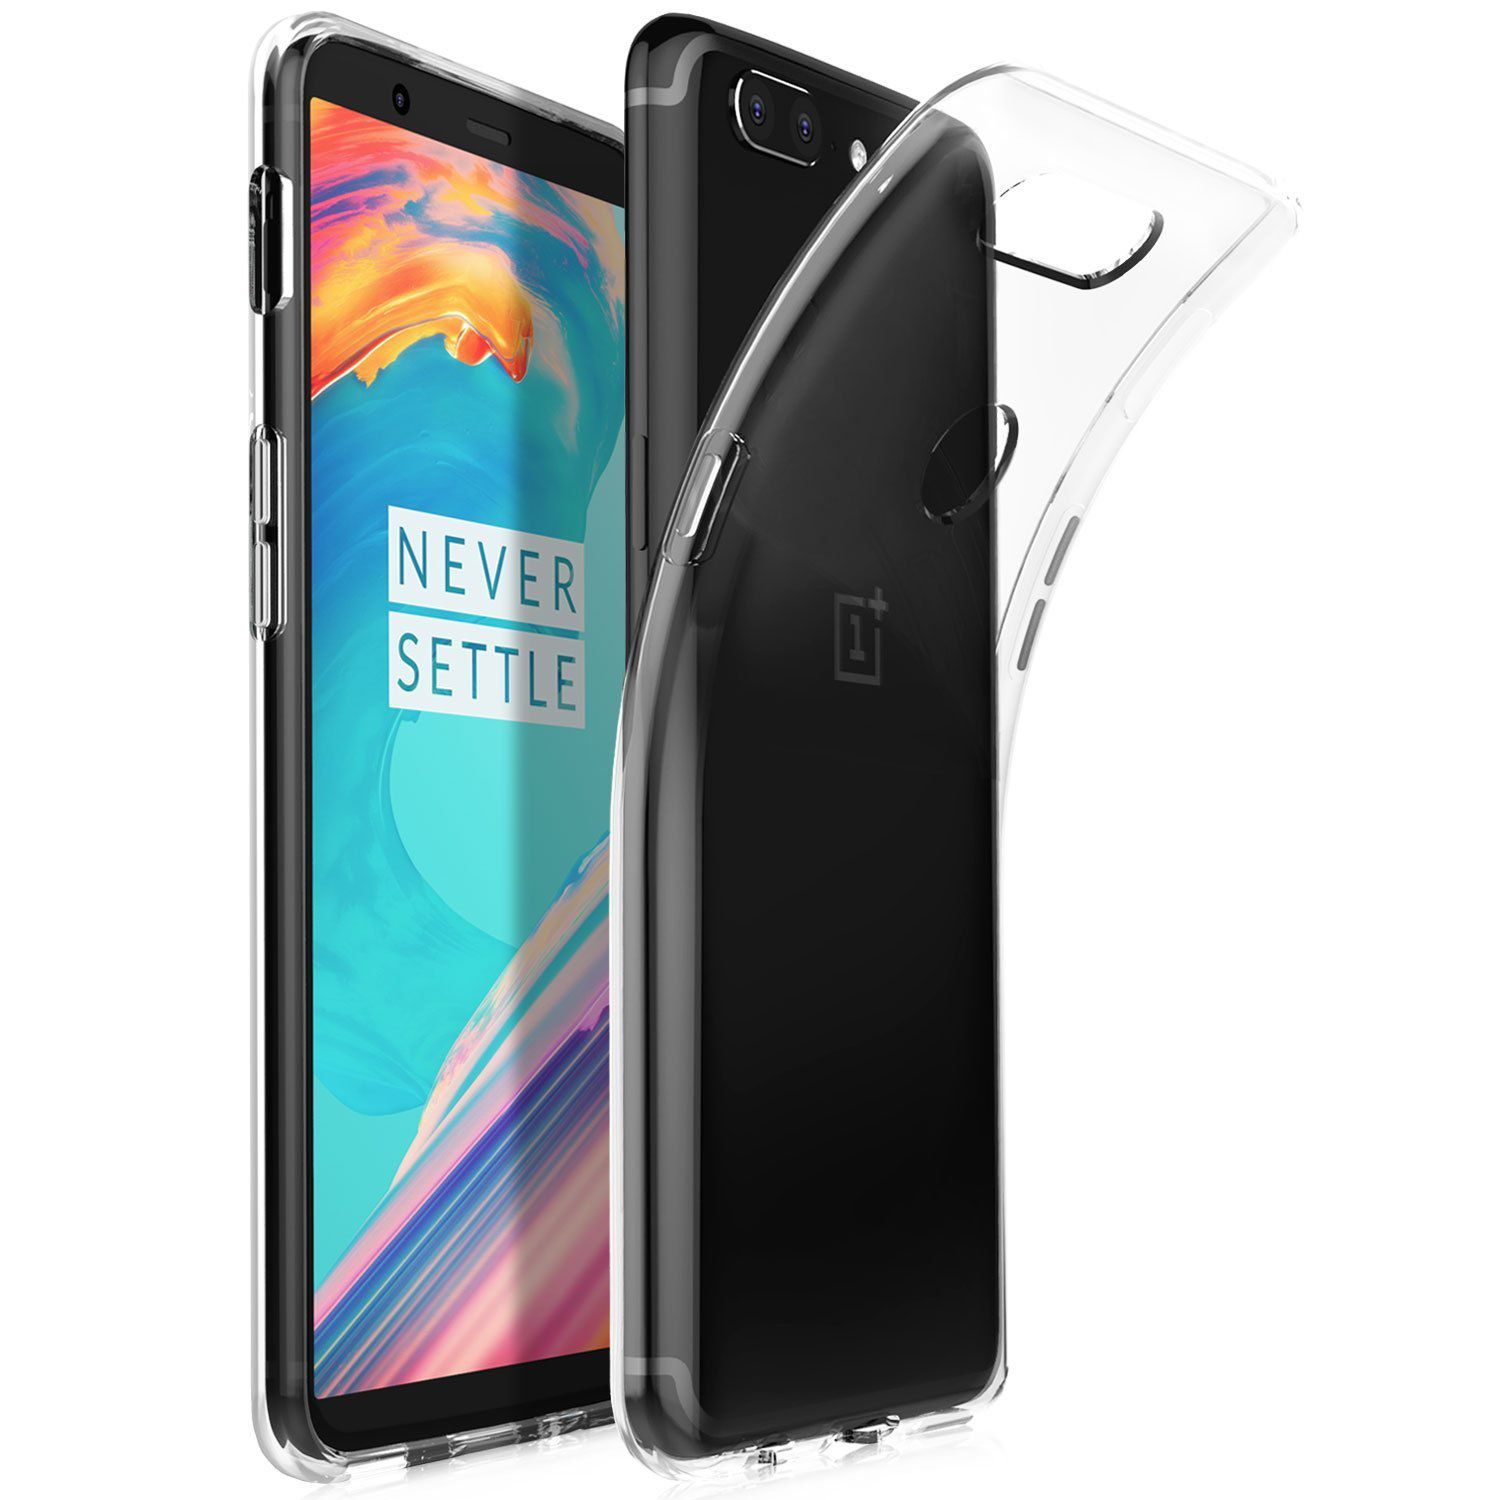 Oneplus 5T Soft Silicon Cases SpectraDeal - Transparent